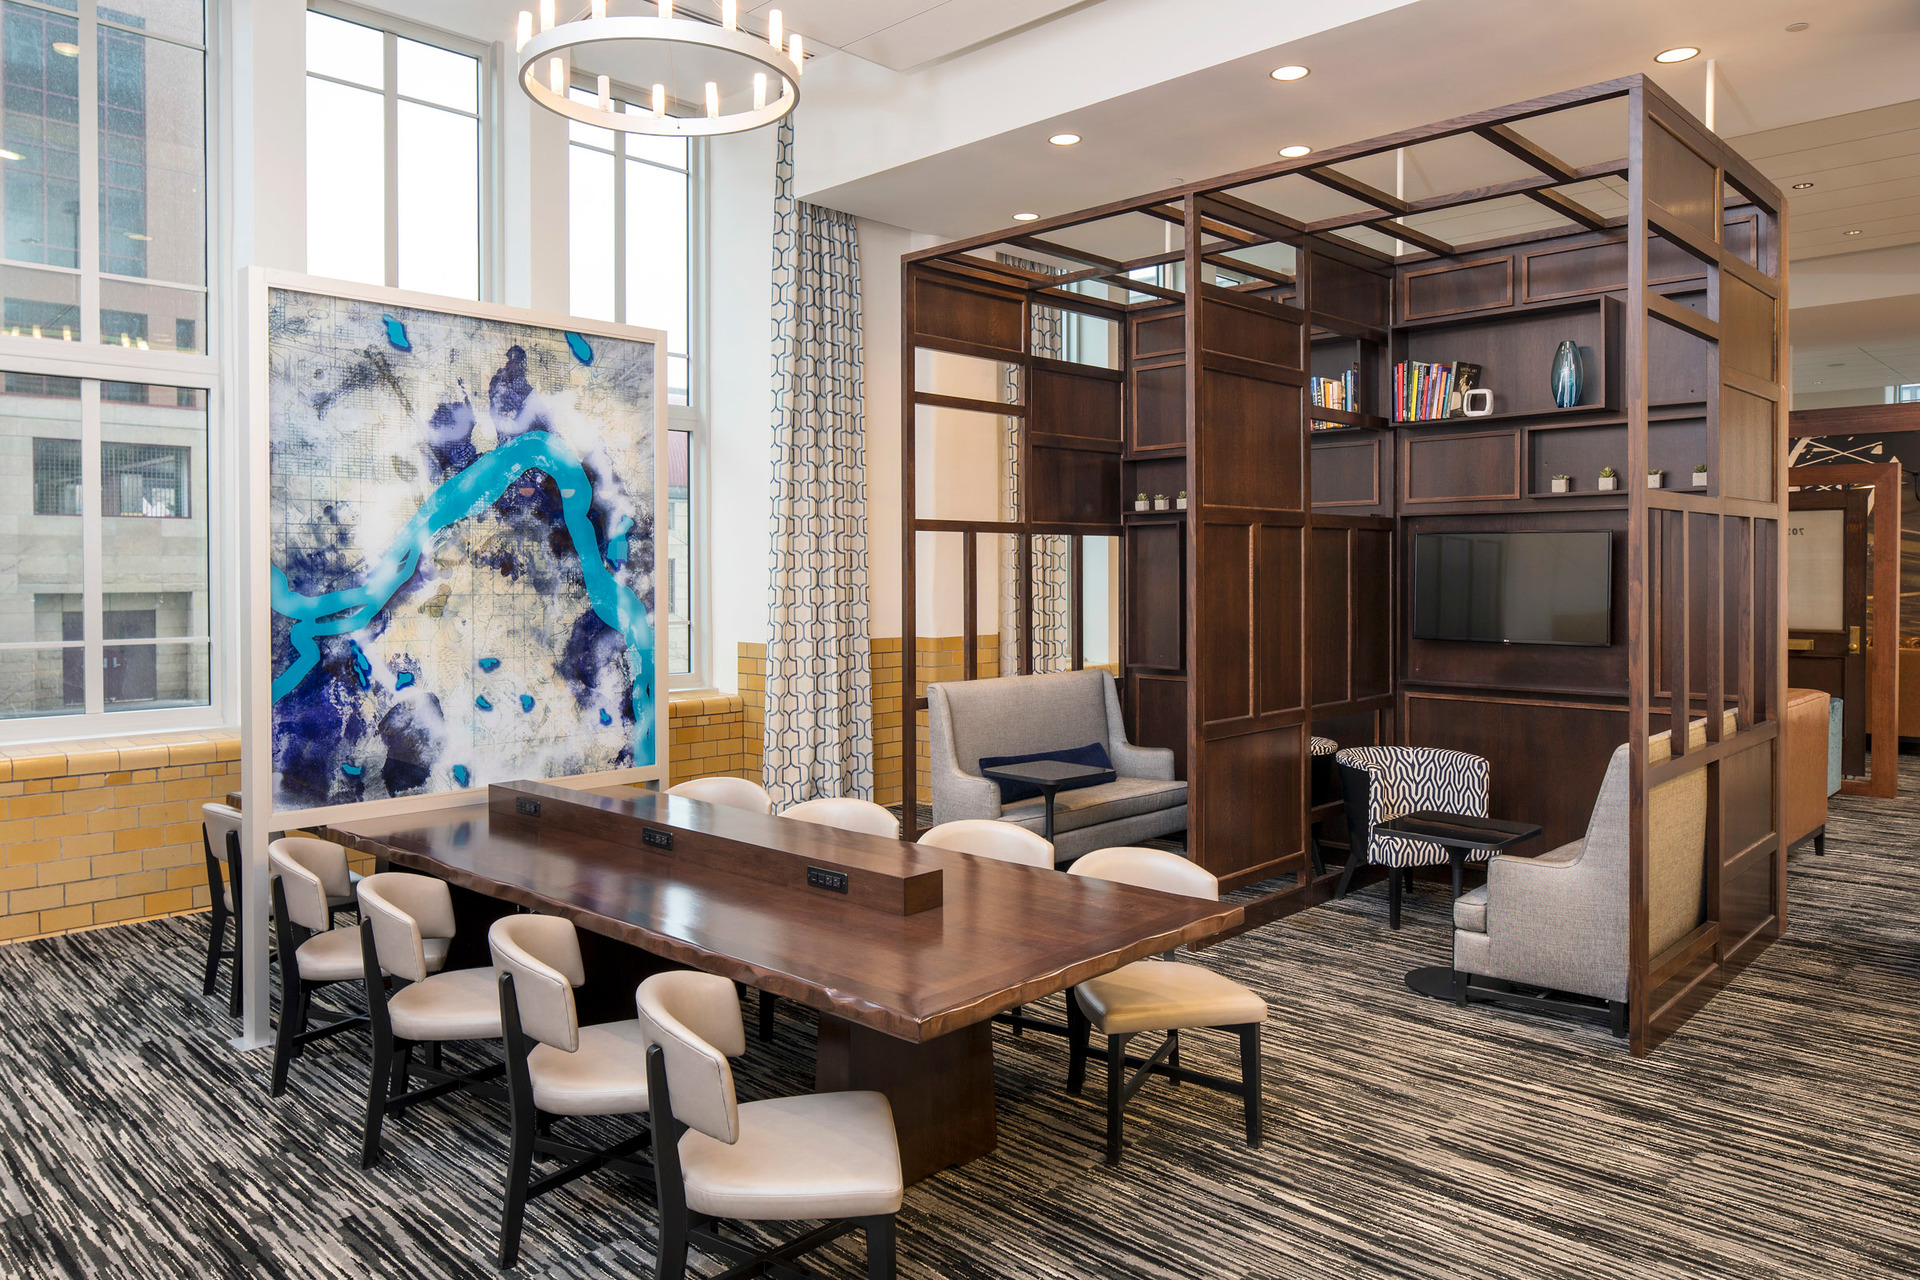 Different design elements create a striking common area at Custom House Hyatt Place in St. Paul, MN.